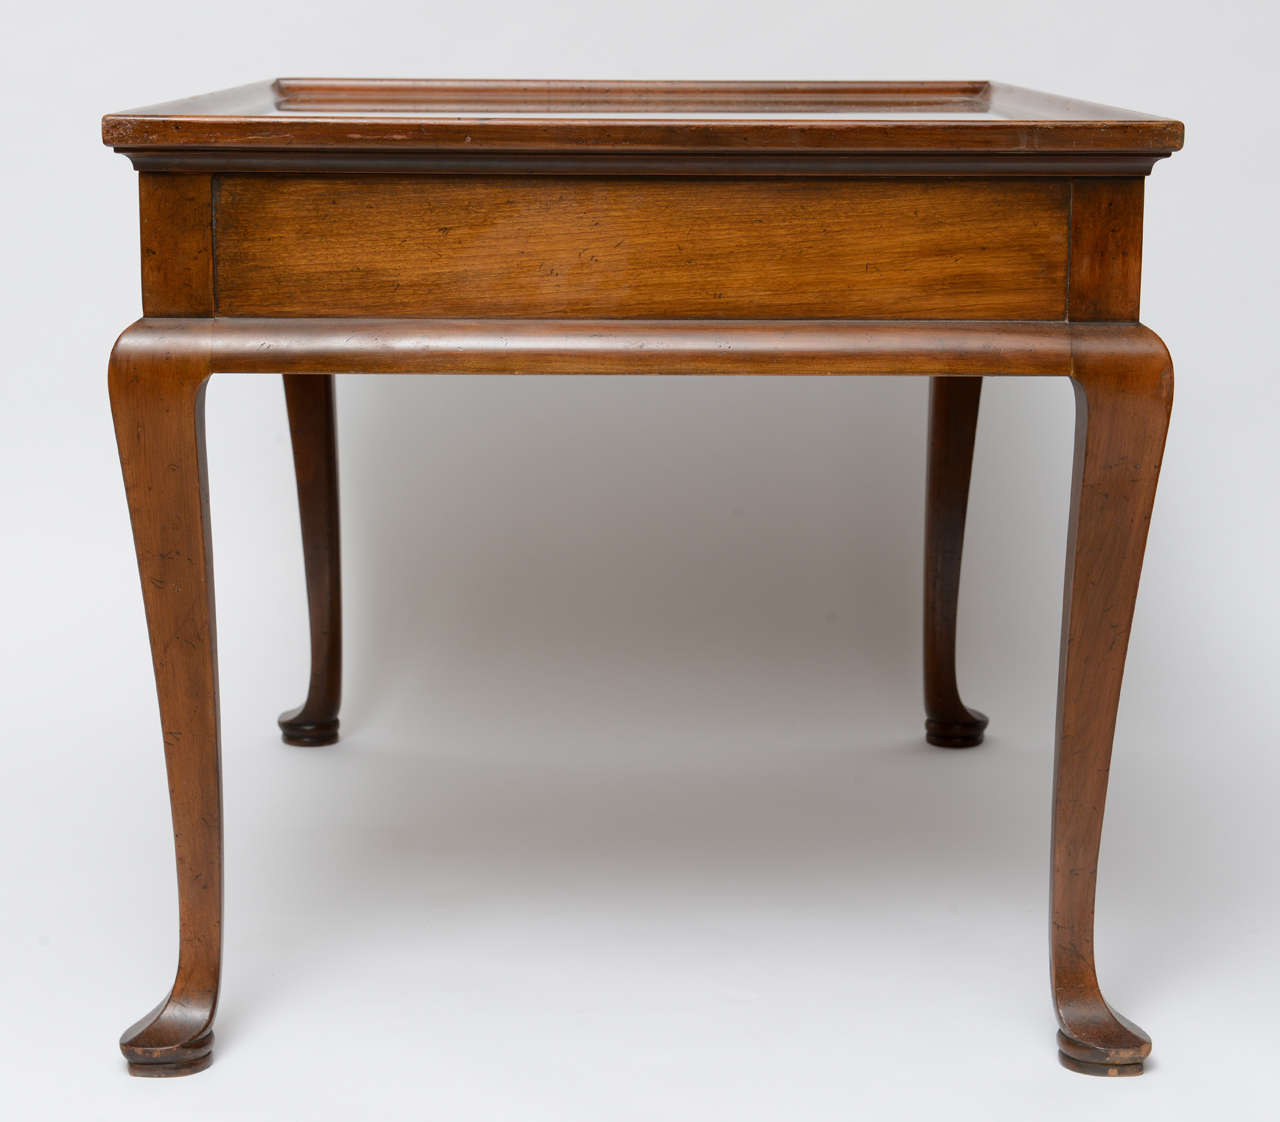 Queen Anne Style Coffee Table By Baker For Sale At 1stdibs